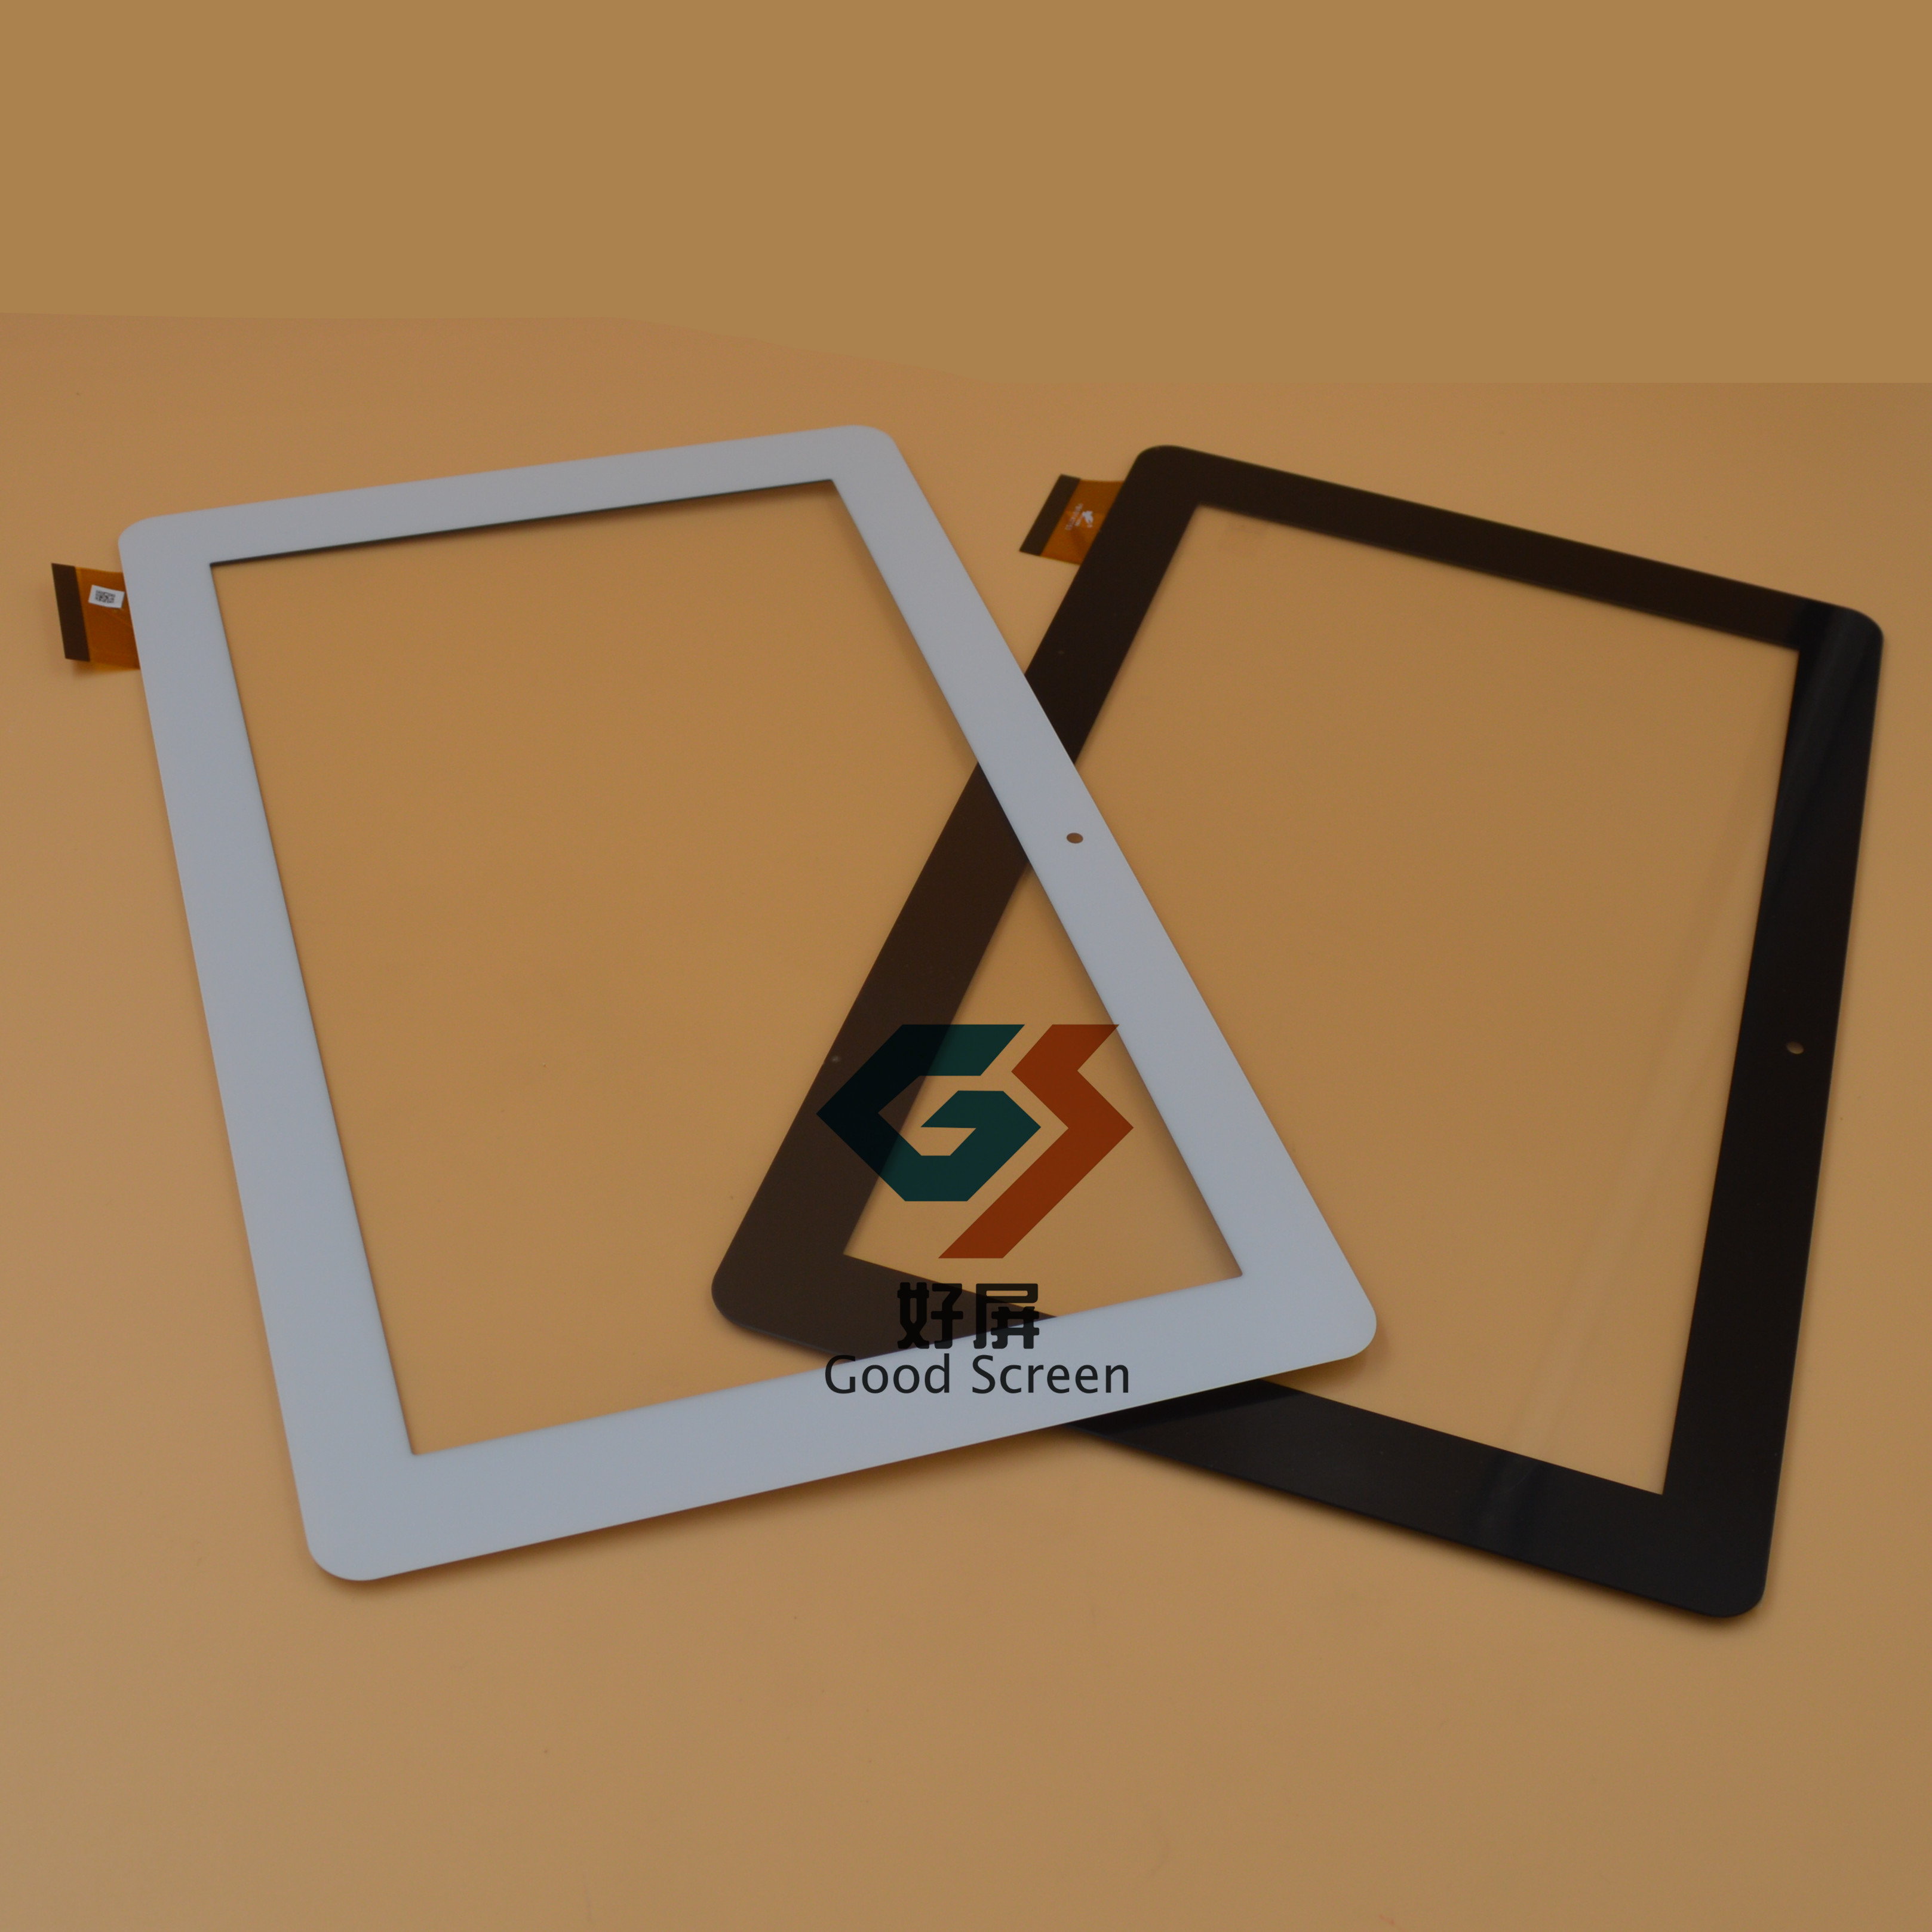 Original 101inch Touch Screen Panel Digitizer For Prestigio Advan Tablet Itab 7 Inch New Multipad Wize 3111 Pmt3111 Mb1019q5 Fpc017h V20 In Lcds Panels From Computer